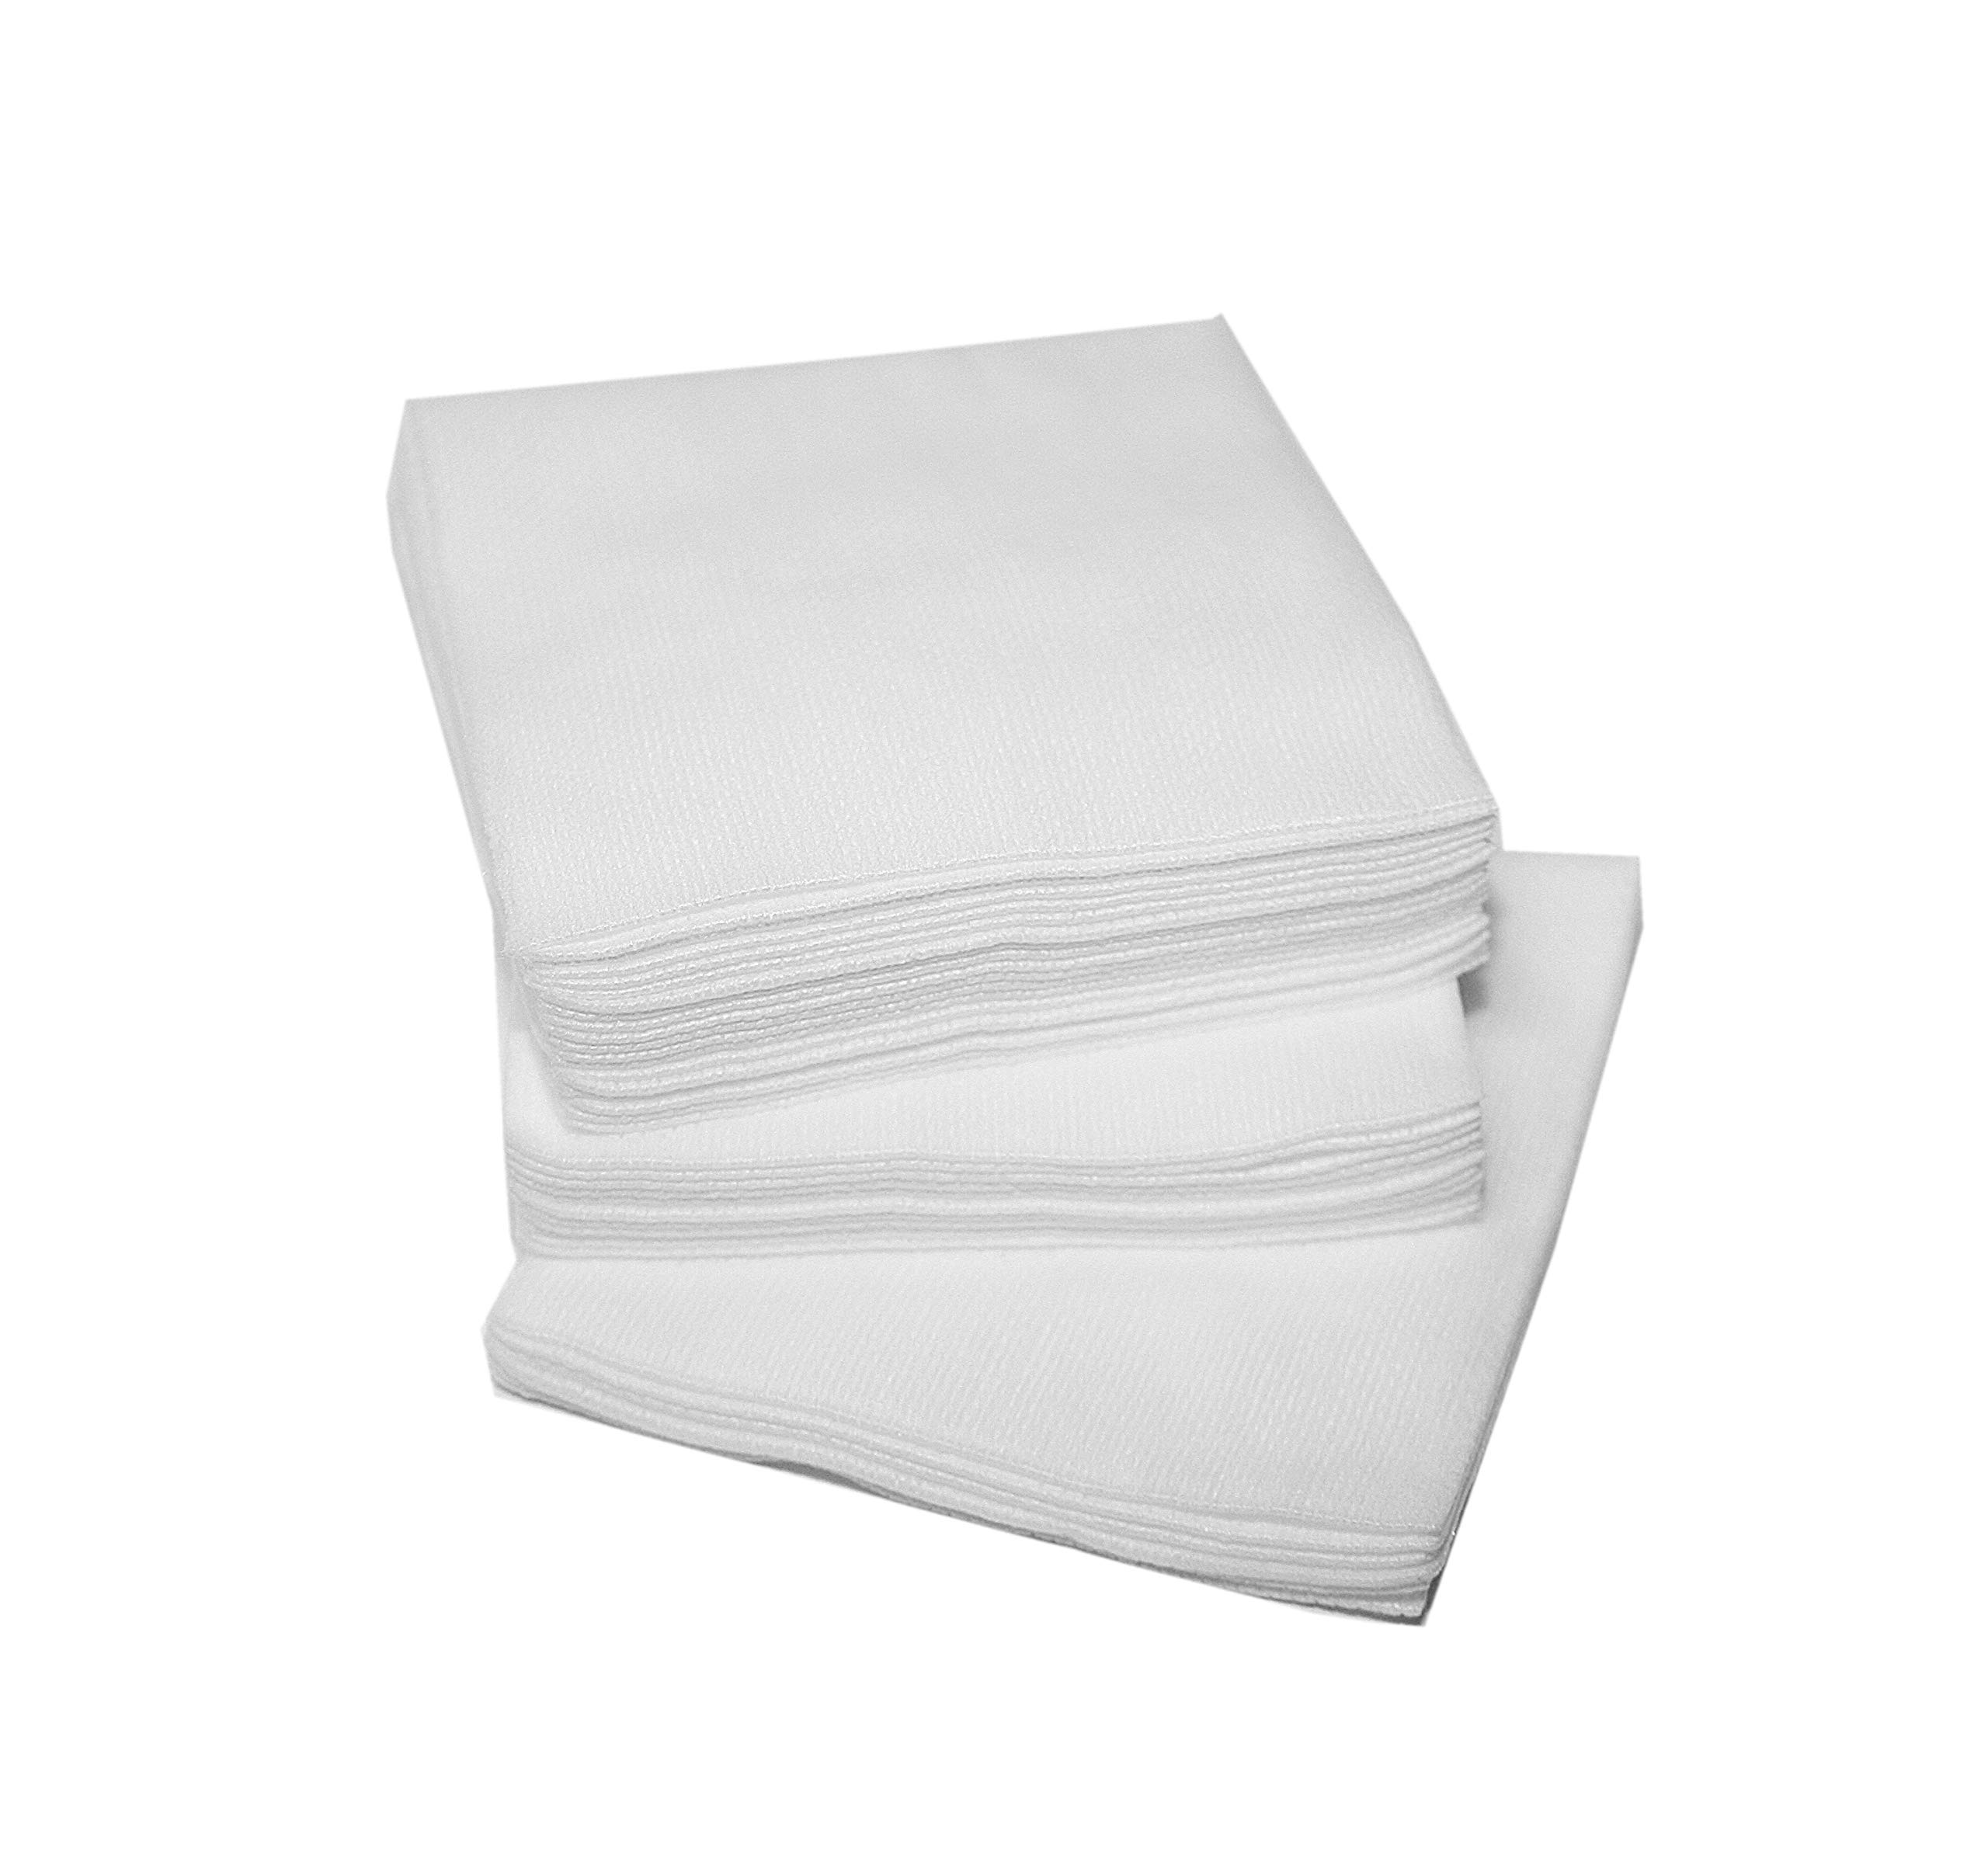 4x4 Nonwoven Esthetic Wipe, Case of 10 packages